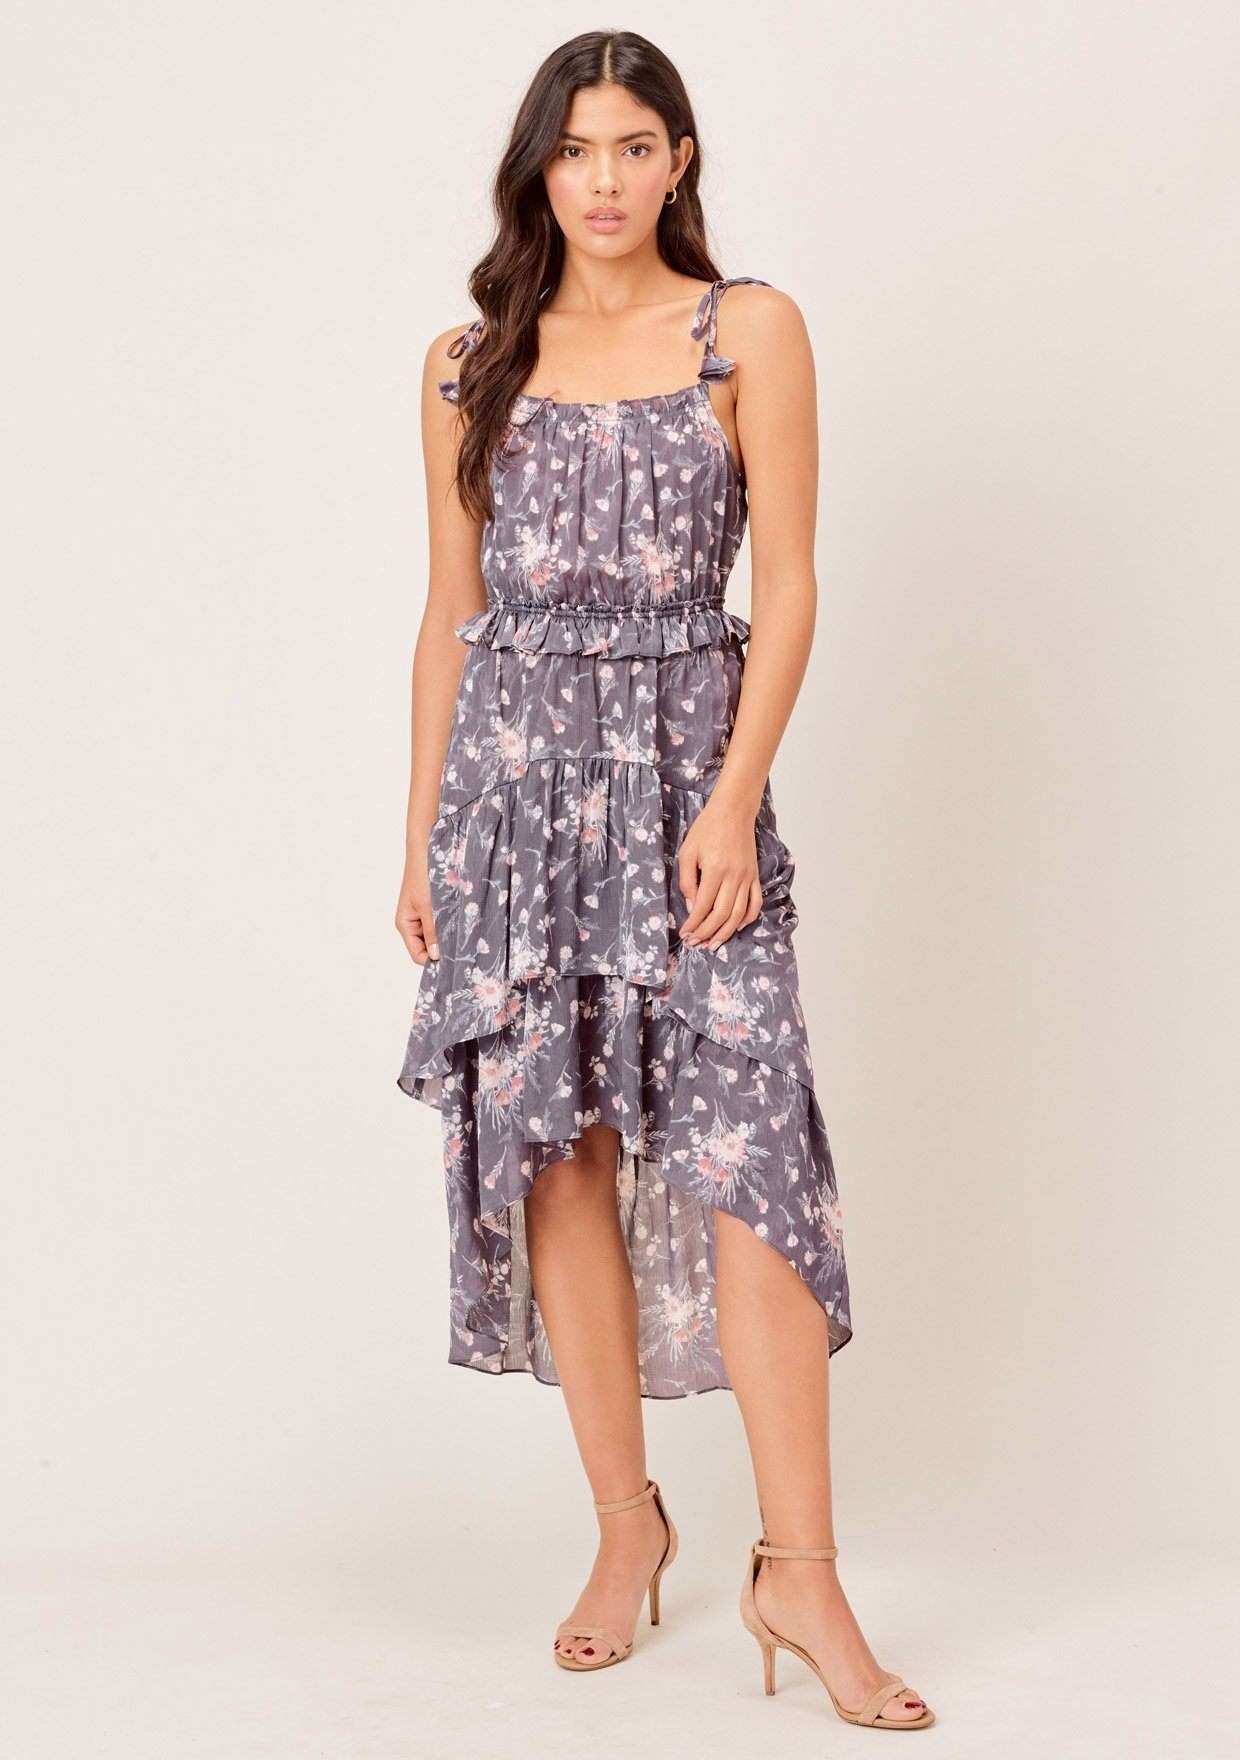 [Color: Charcoal/Mocha] Lovestitch charcoal/mocha floral printed, tiered high-low dress with tie straps & ruffled details.